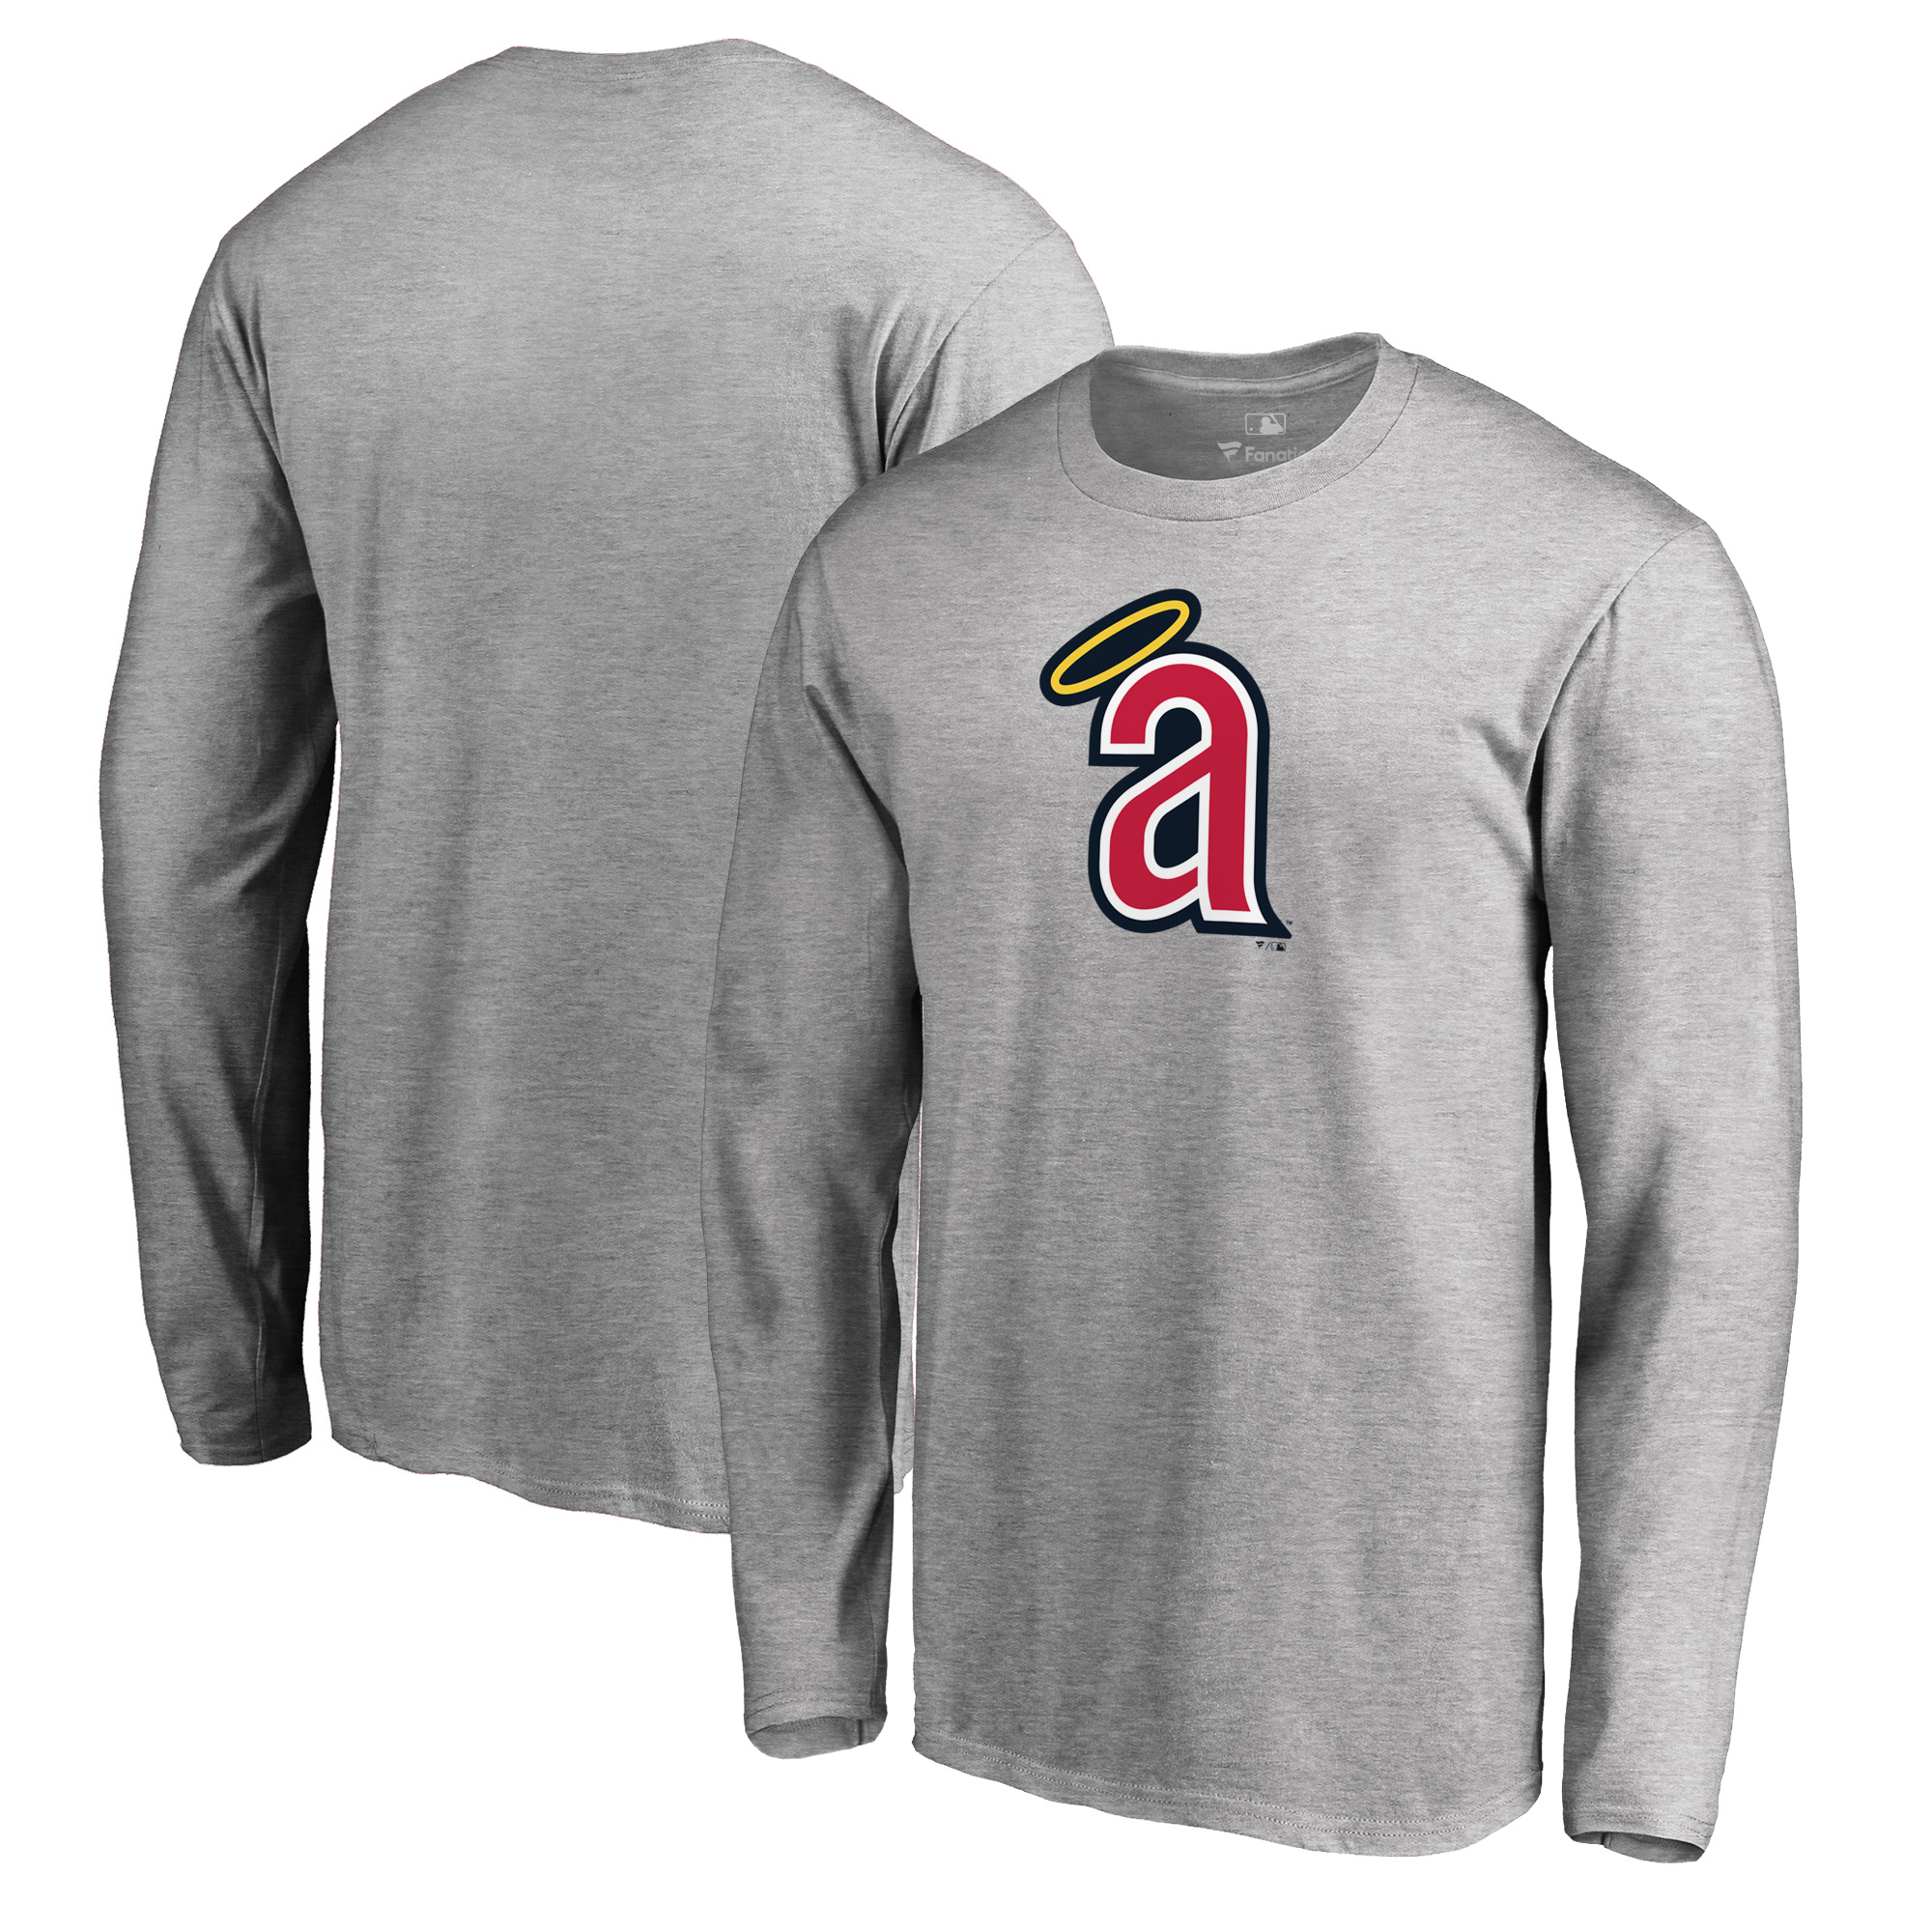 California Angels Fanatics Branded Cooperstown Collection Huntington Long Sleeve T-Shirt - Heathered Gray